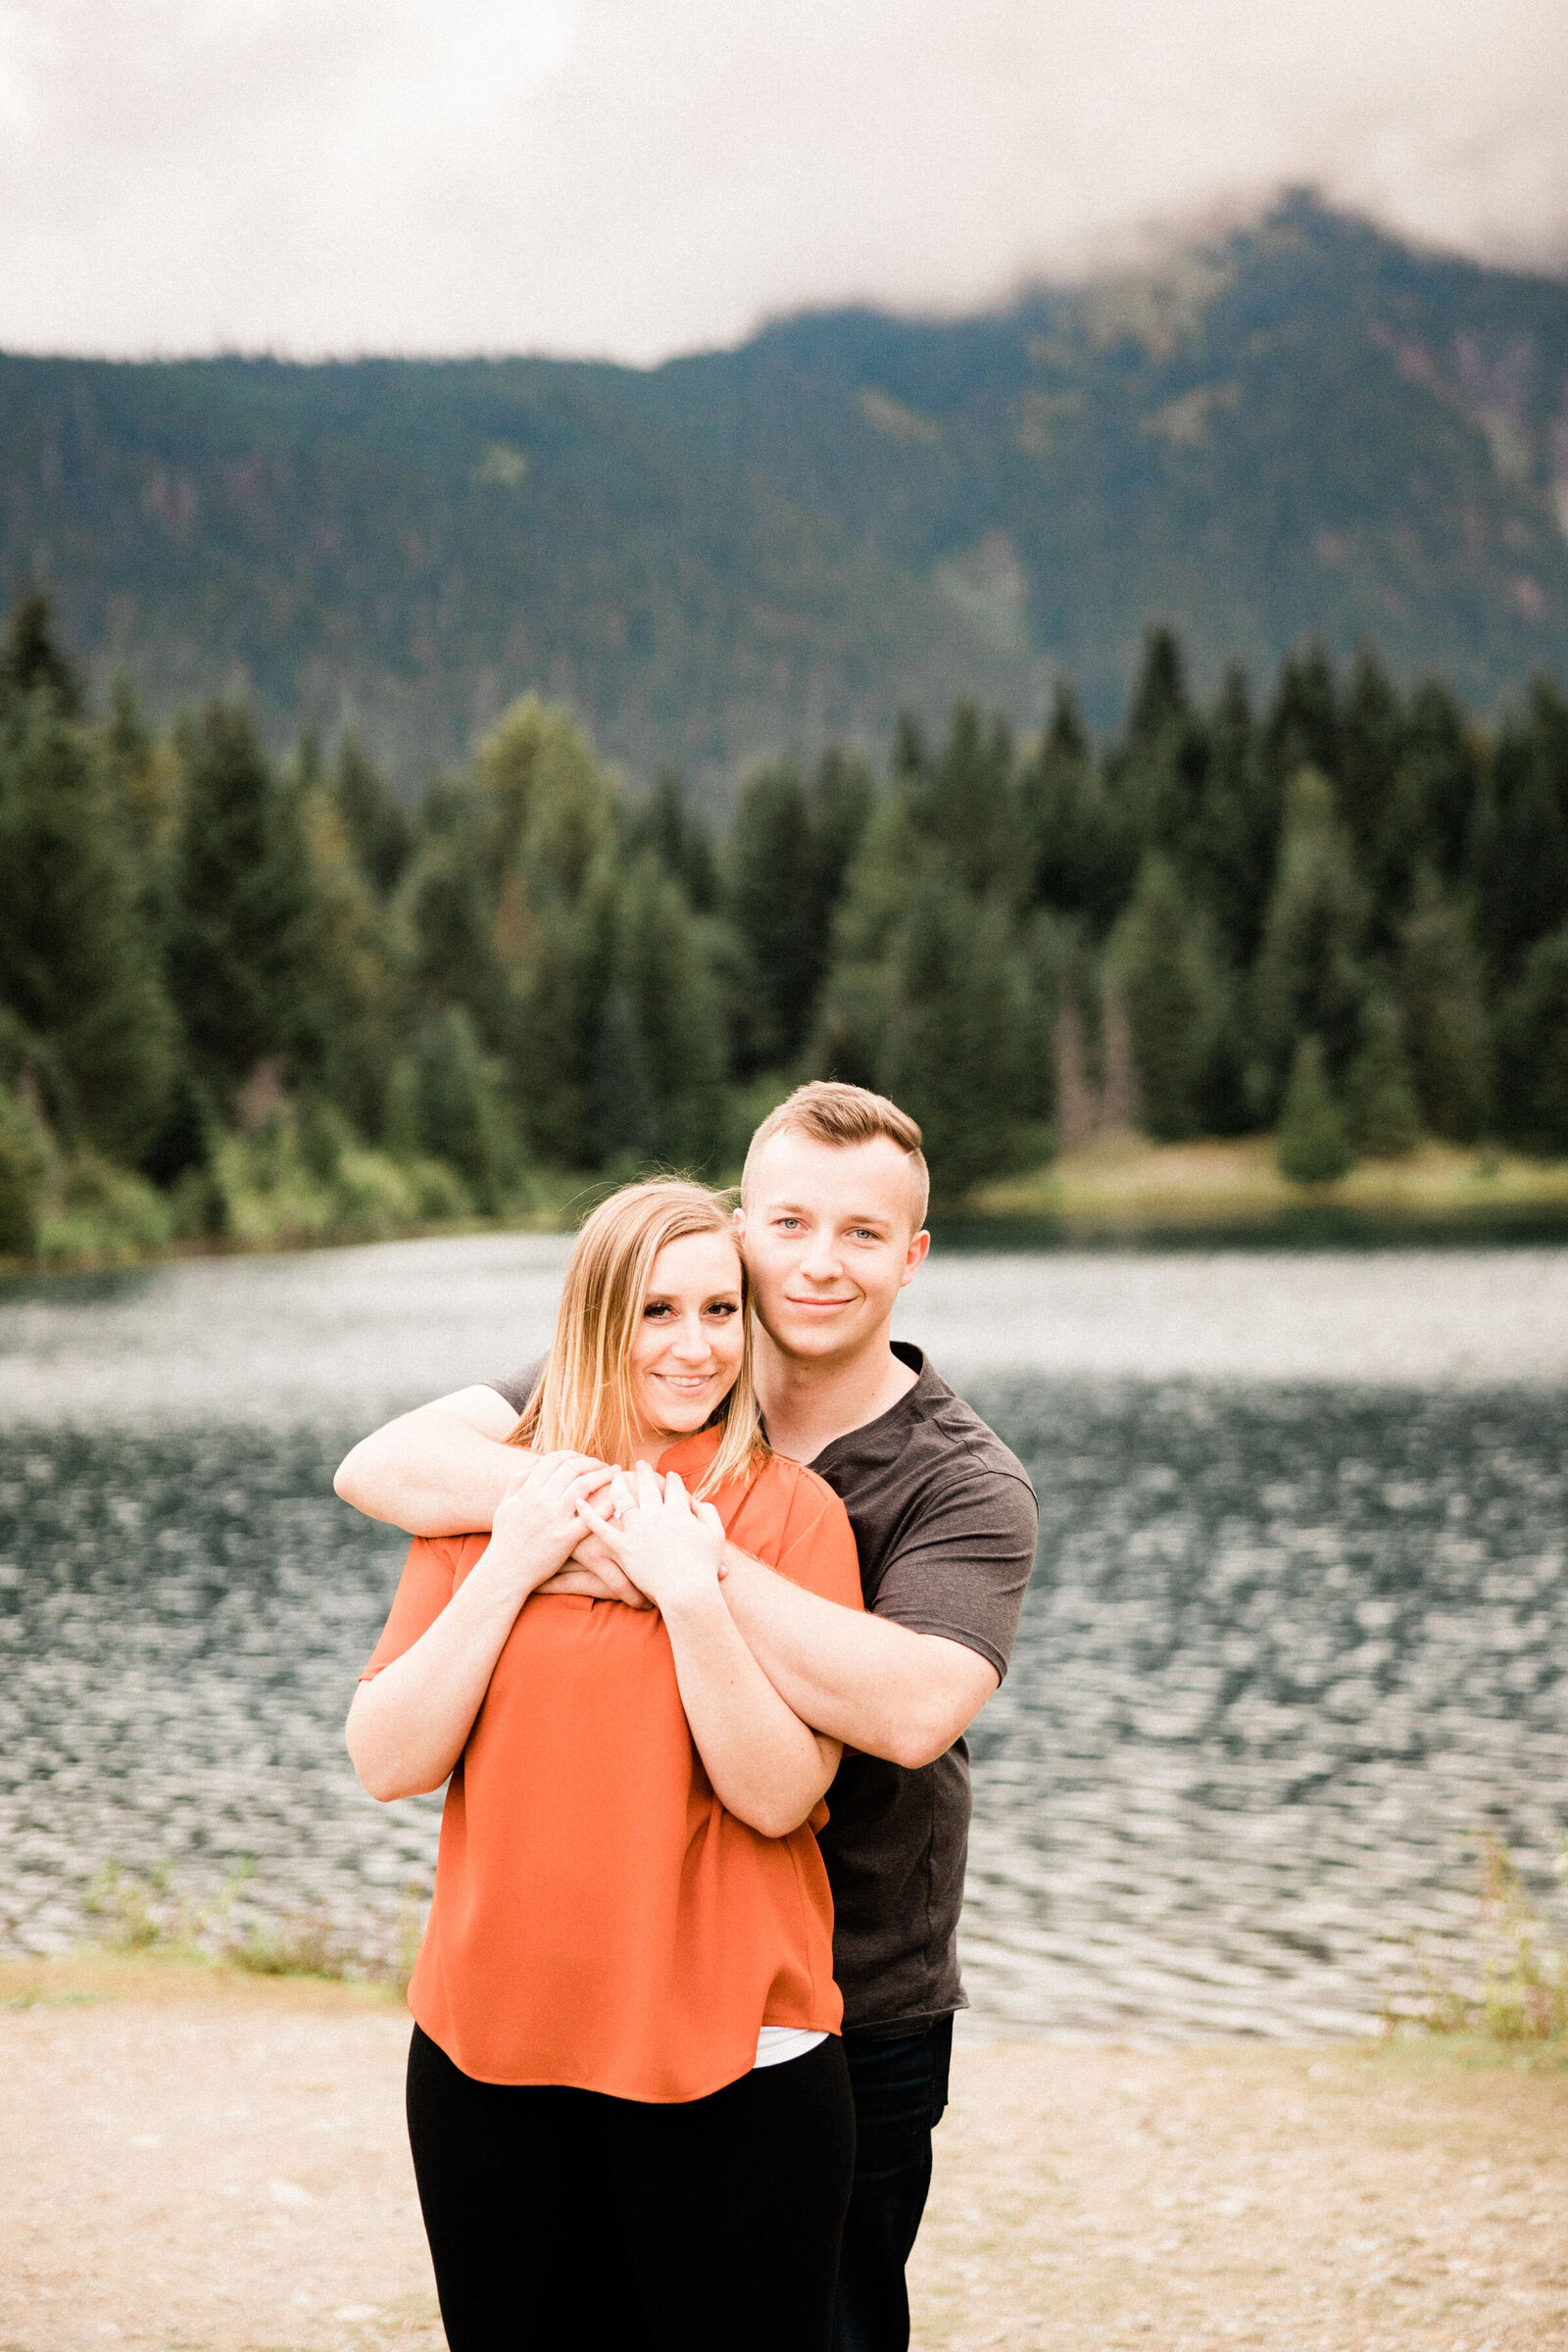 gold creek pond near snoqualmie pass, best spot for engagement photos